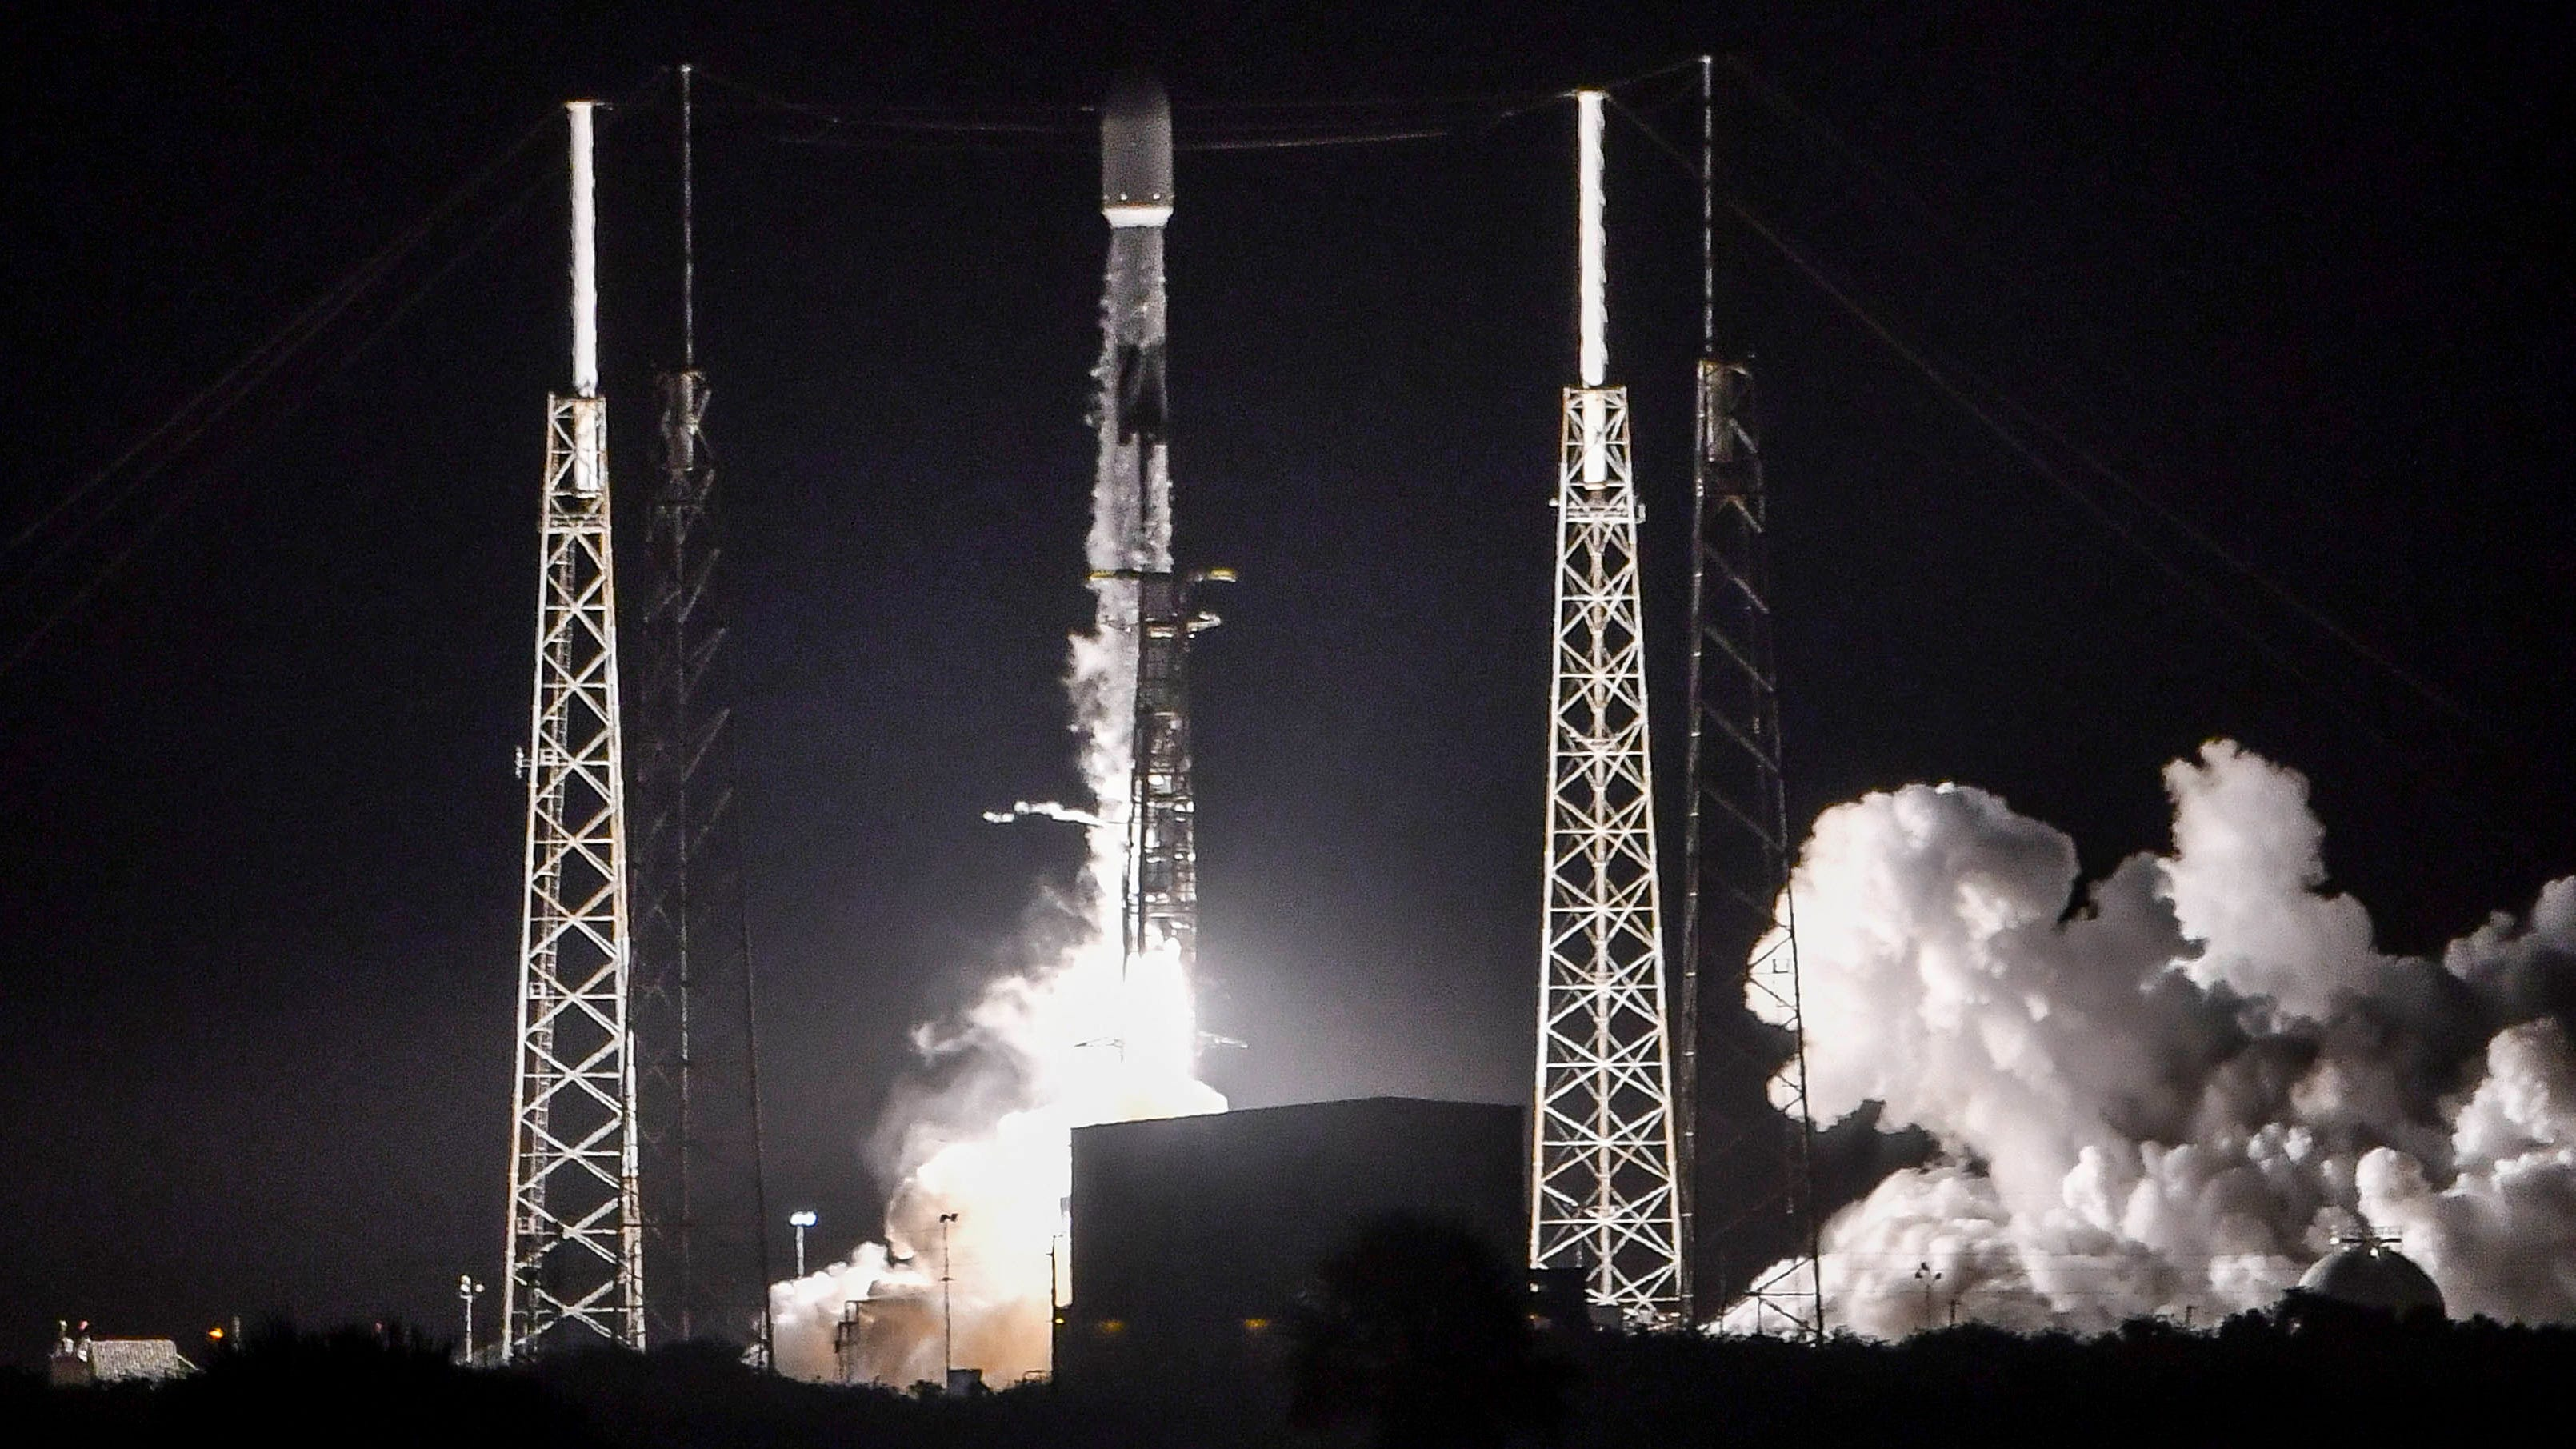 A SpaceX Falcon 9 rocket lifts off from Cape Canav